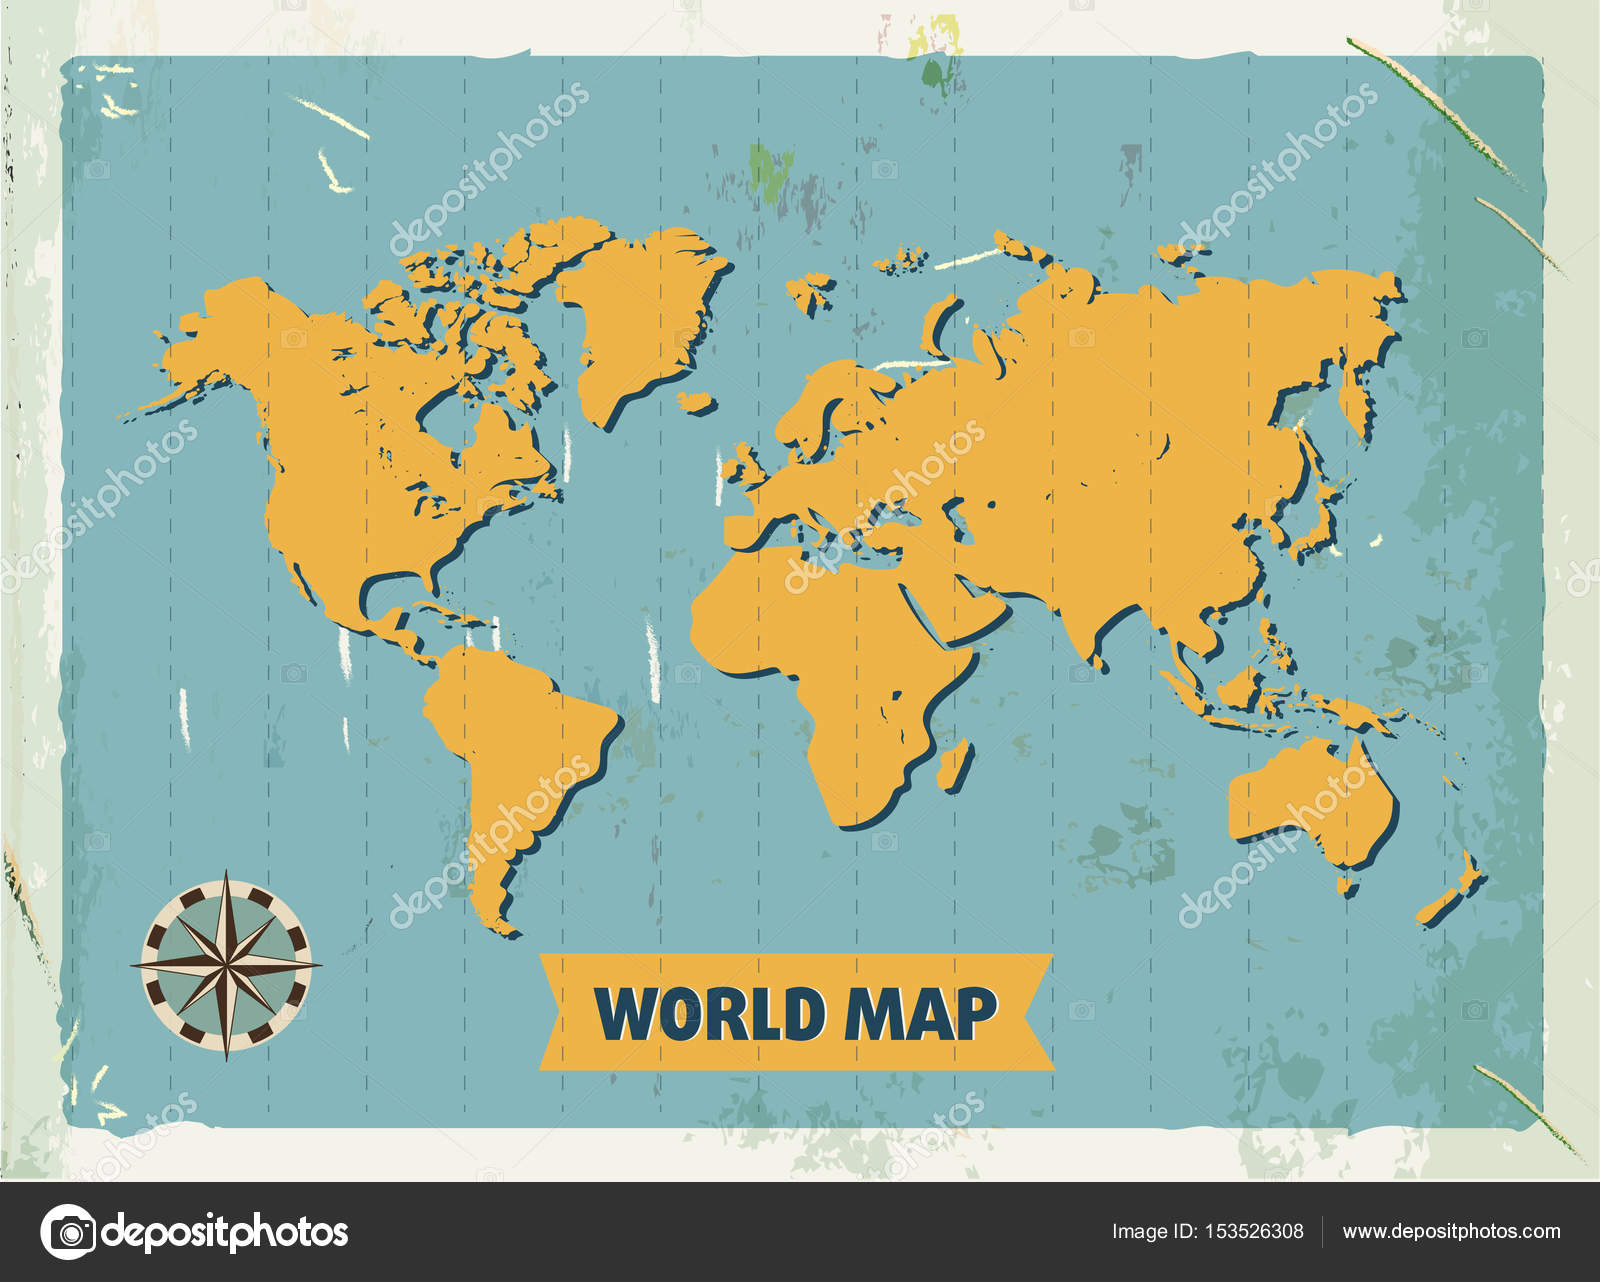 Grunge retro metal sign with world map vintage poster old grunge retro metal sign with world map vintage poster old fashioned design gumiabroncs Images